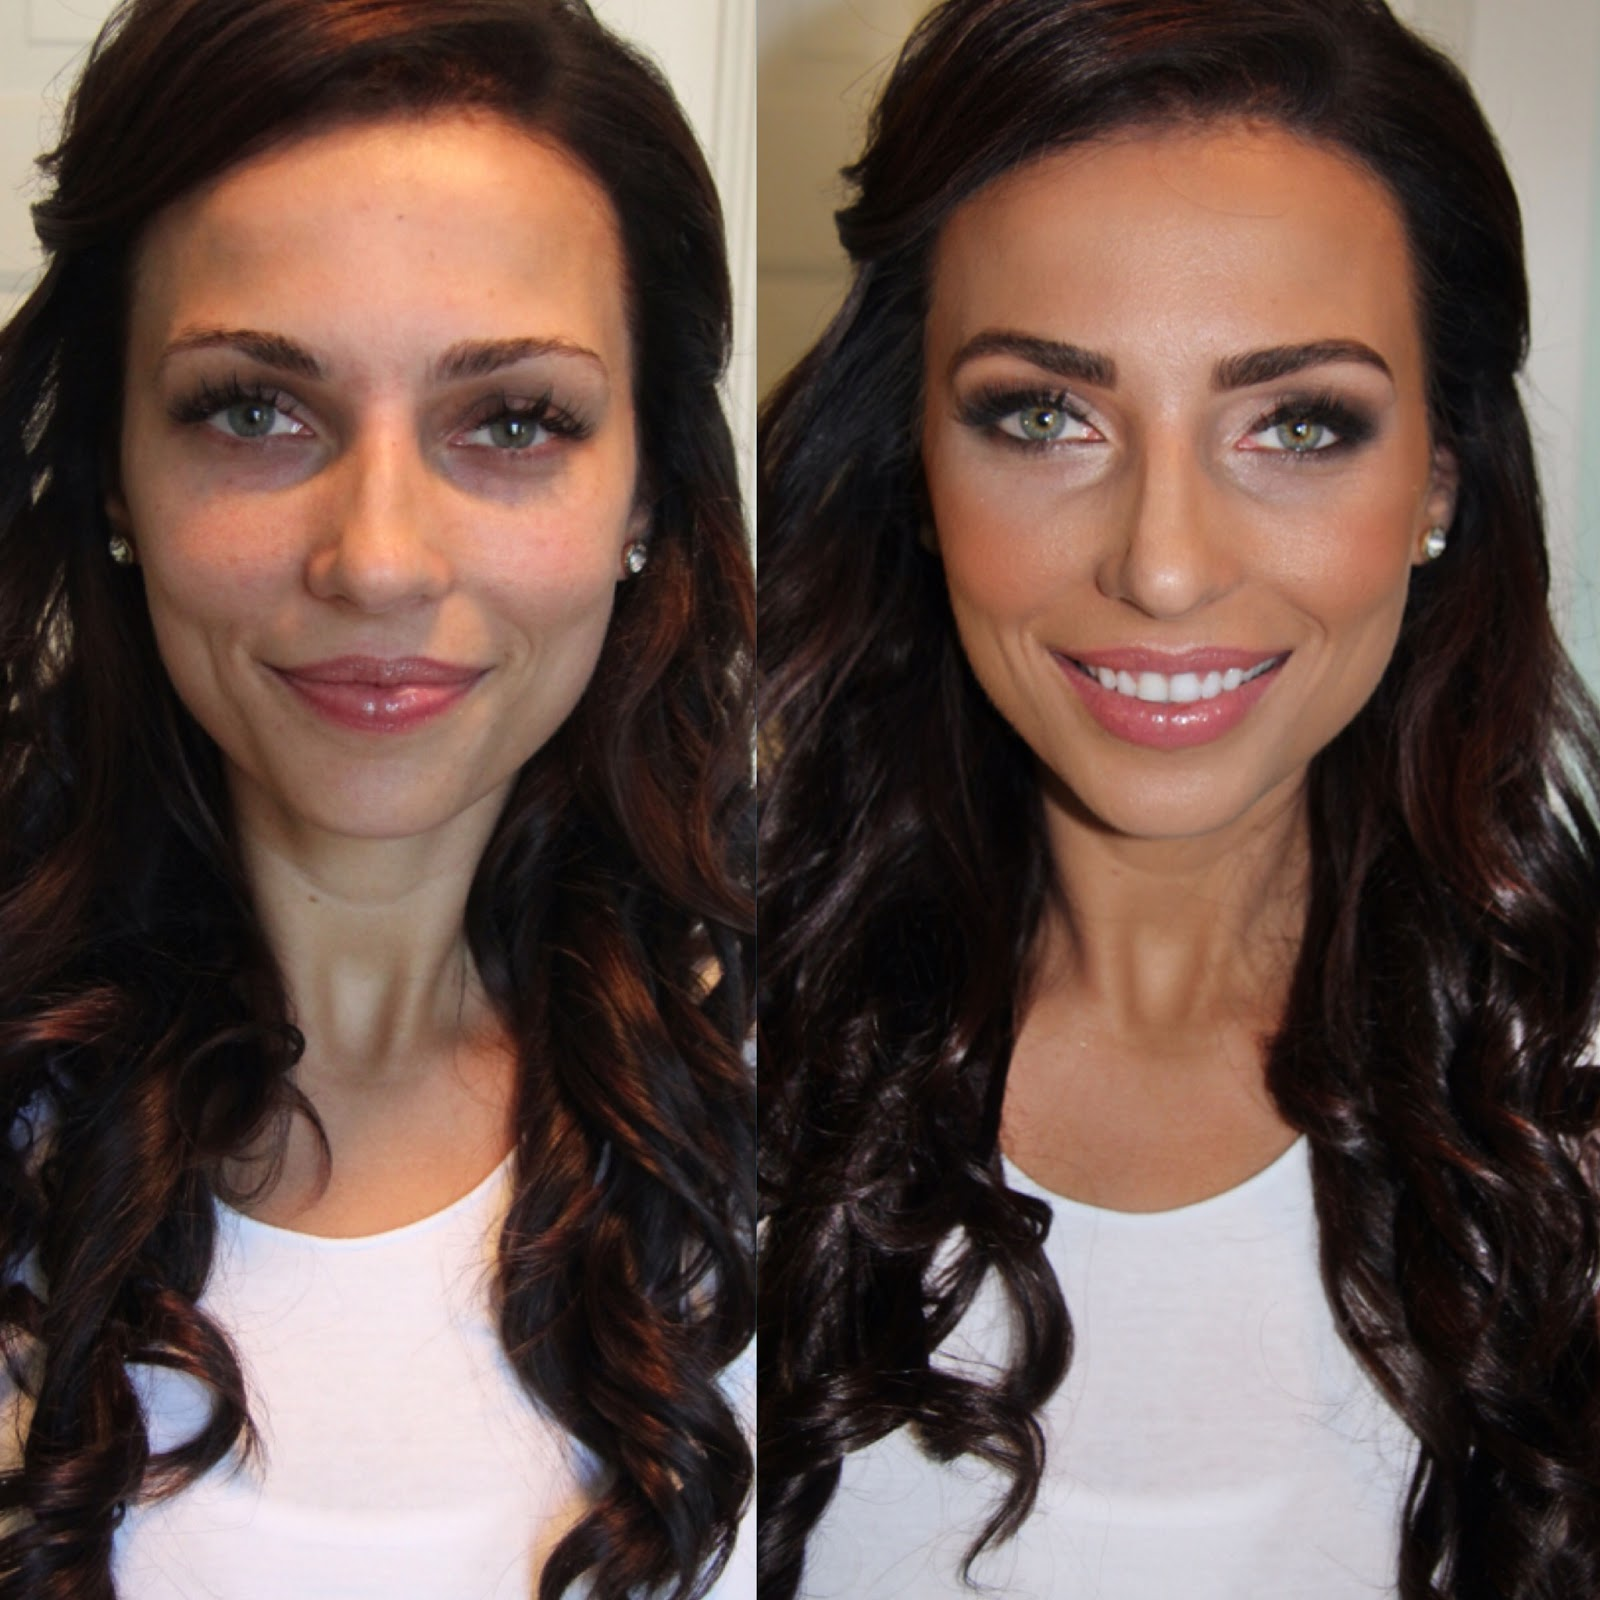 Brides Models Pageant Queens L And More Wanting Makeup Done